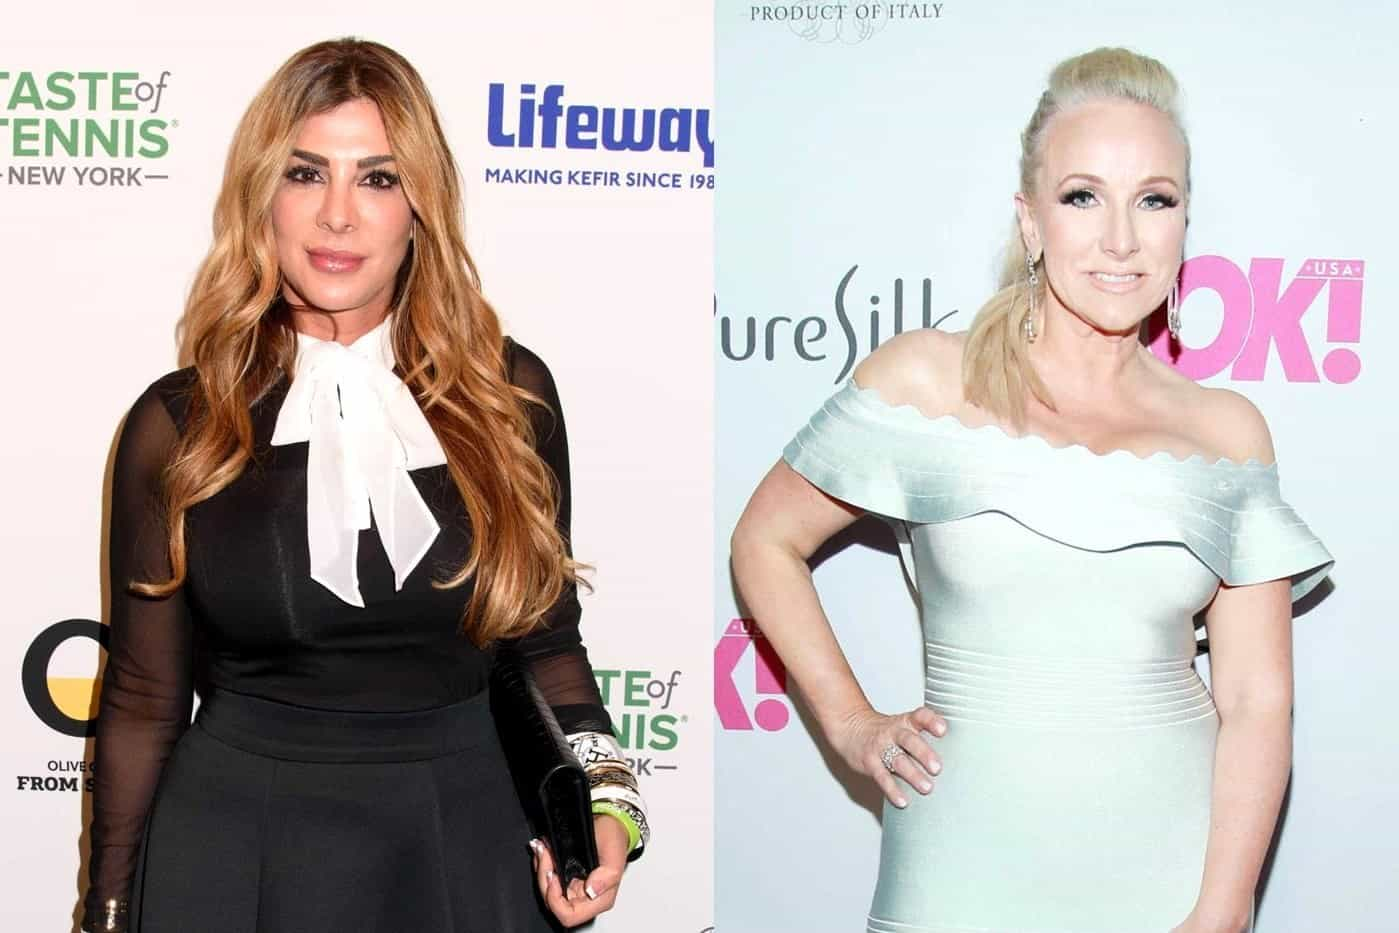 RHONJ's Siggy Flicker Mocks Margaret Josephs' Past Infidelity